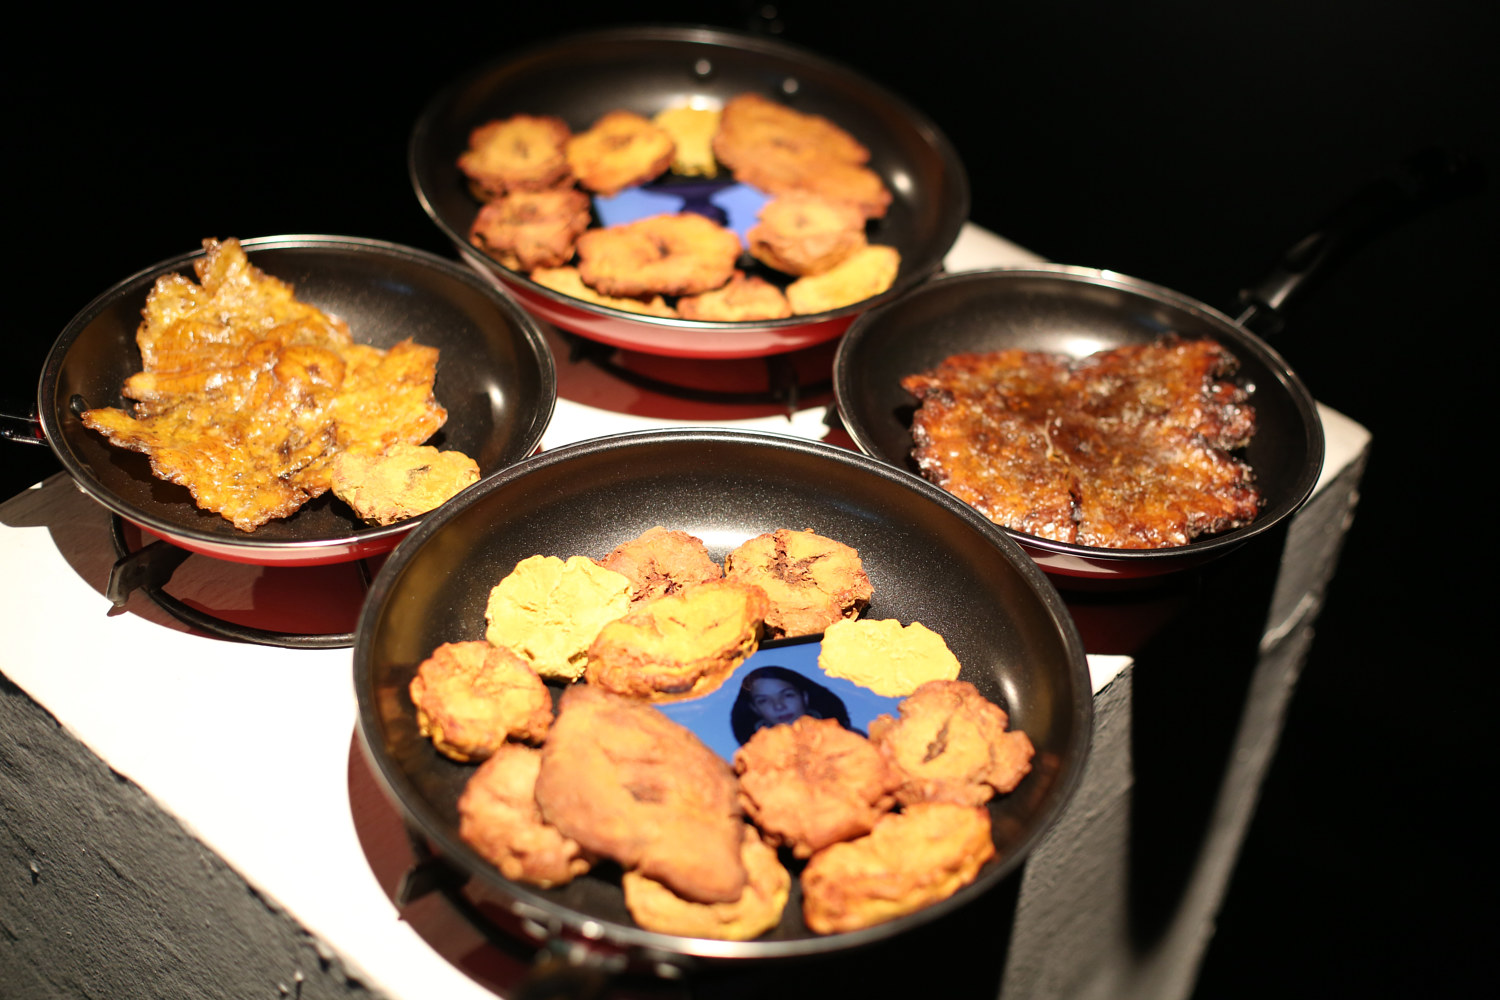 Tostones: Urban Folkloric at AS220 by Leenda Bonilla